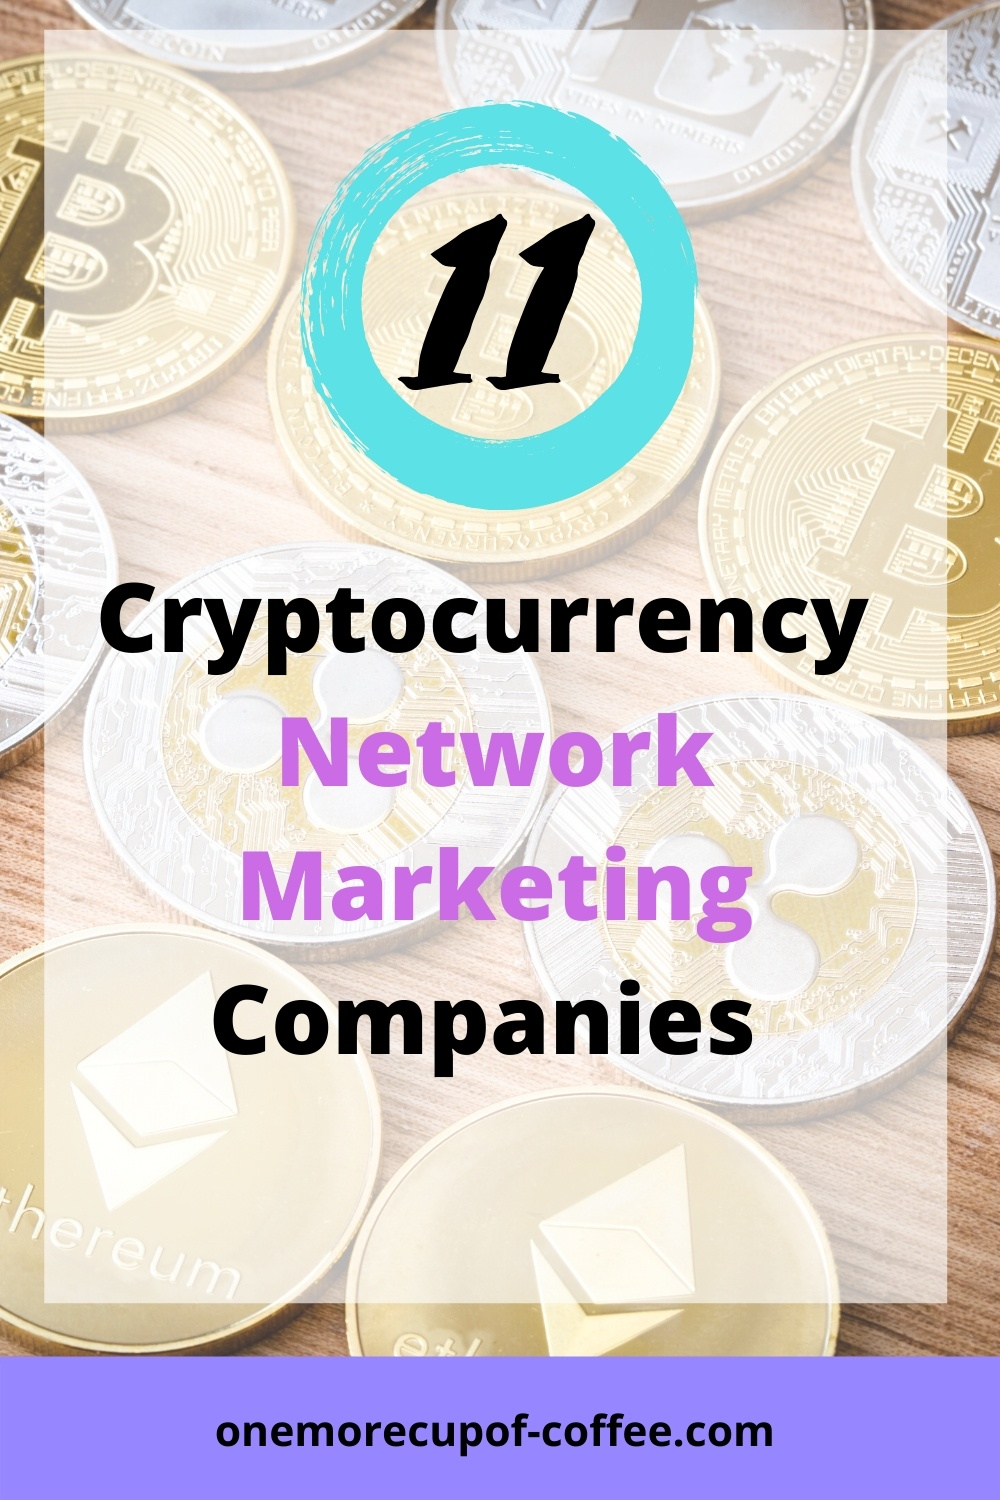 Cryptocurrency image to represent CryptocurrencyNetwork Marketing Companies